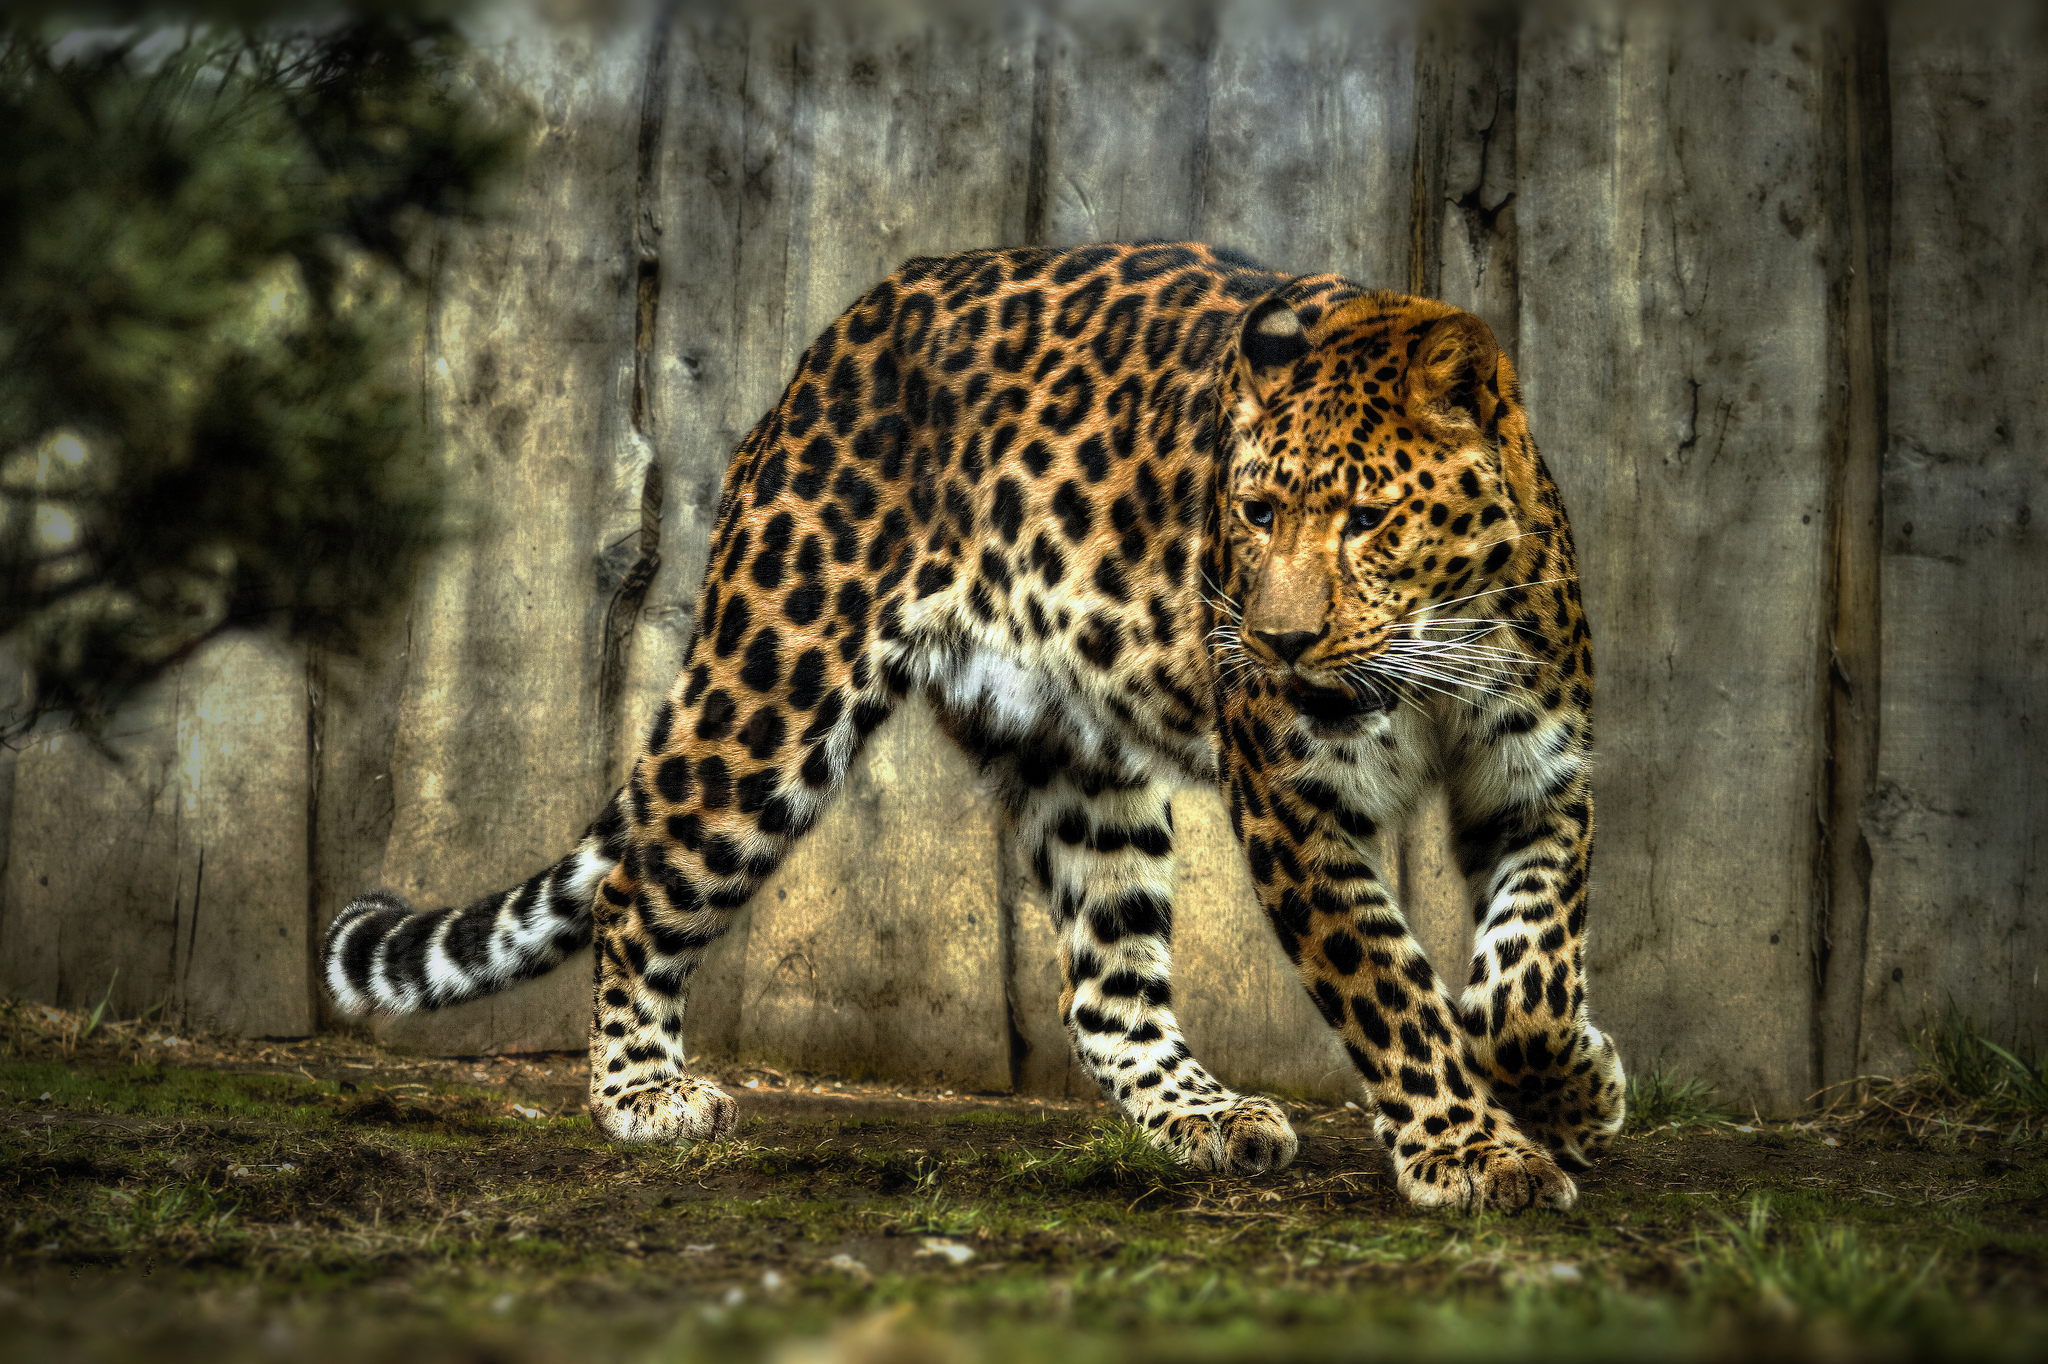 Jaguar hd wallpaper background image 2048x1364 id - Jaguar animal hd wallpapers ...